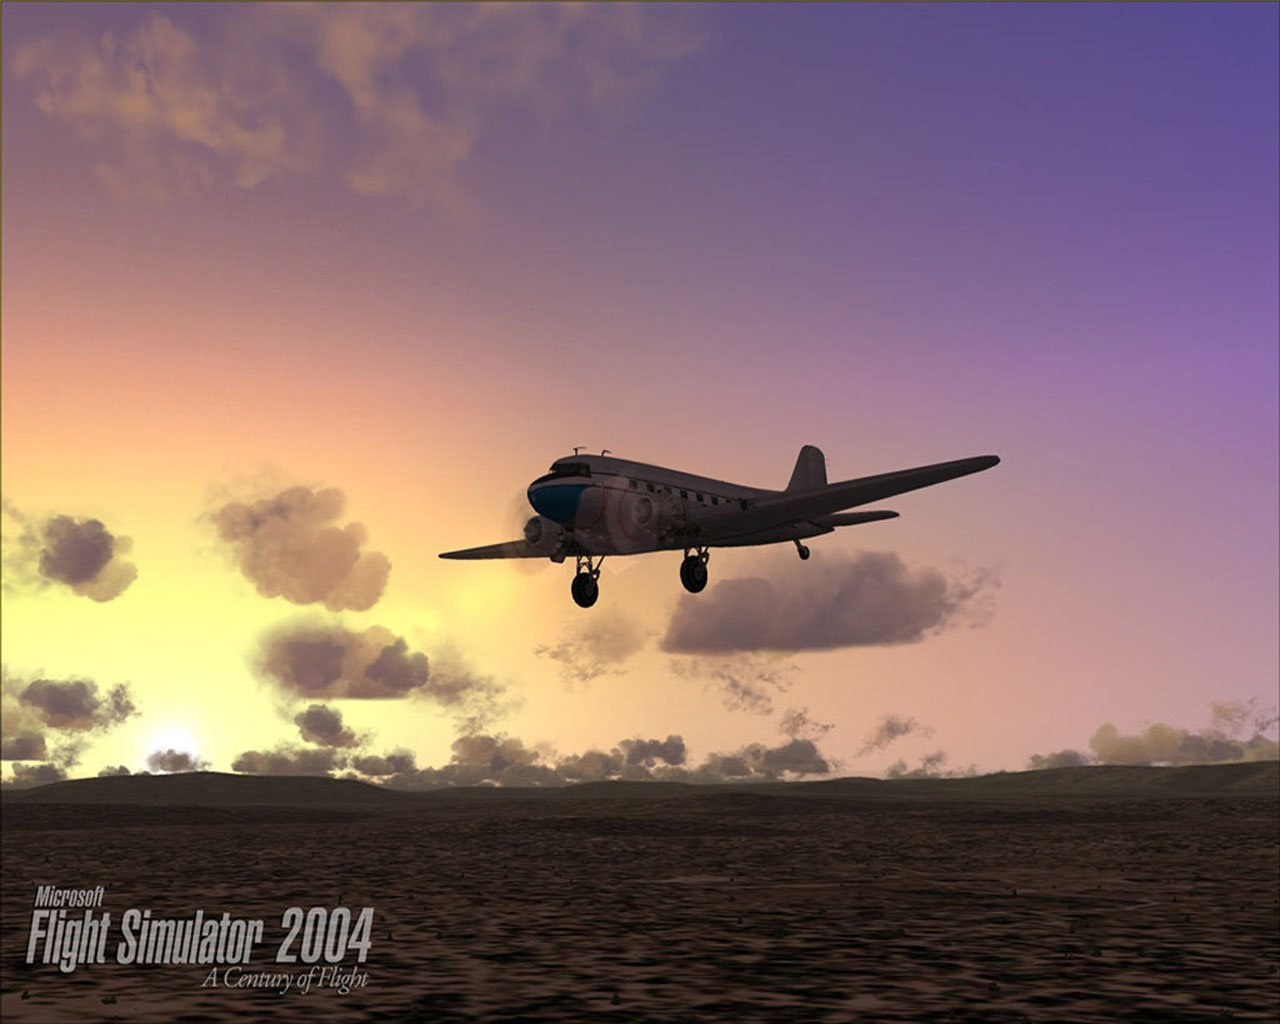 Download Flight Simulator Wallpapers Pictures Photos and Backgrounds 1280x1024